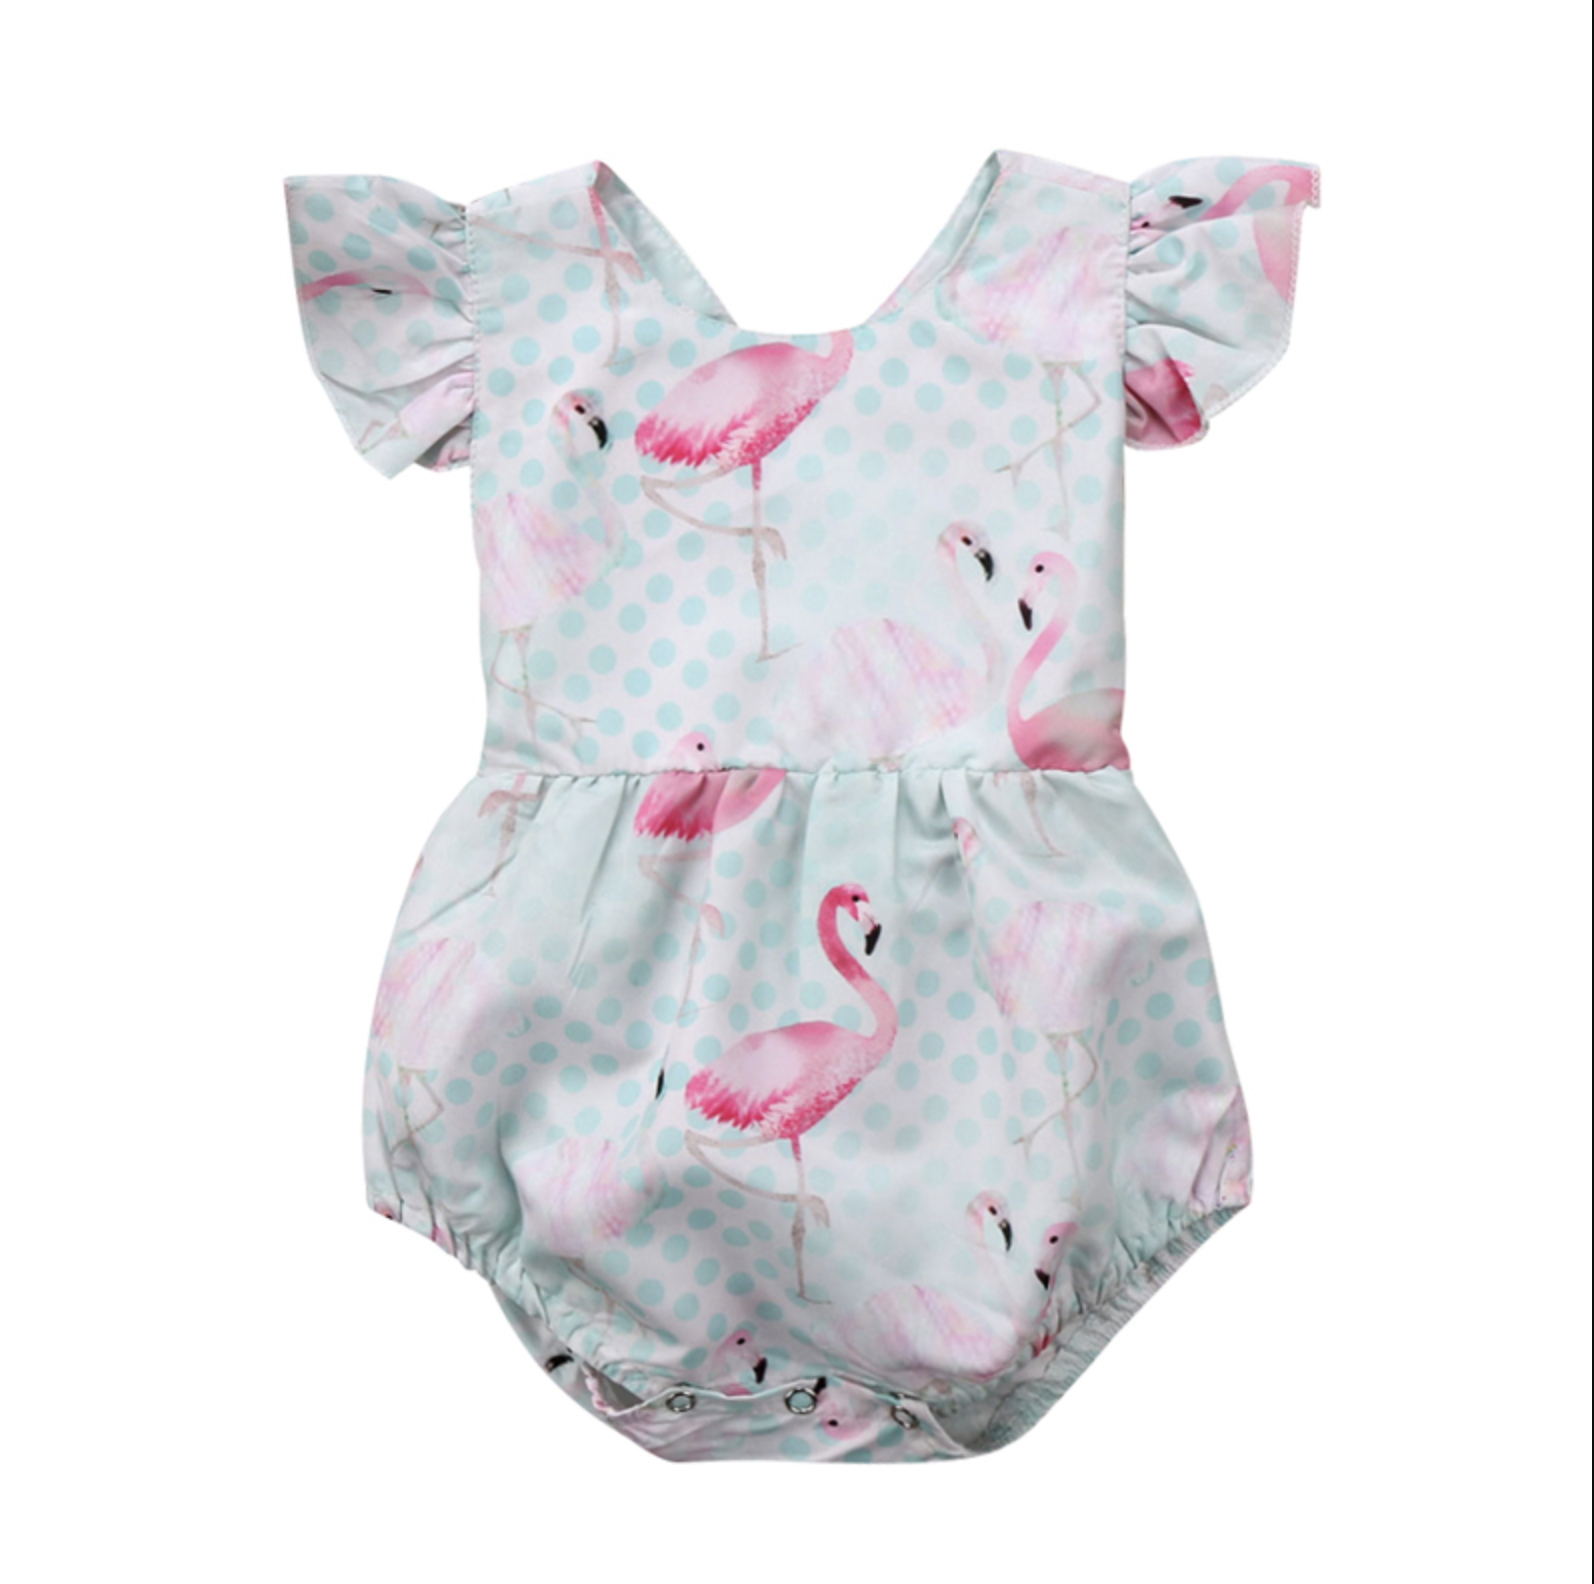 Barboteuse bébé fille robe flamant rose